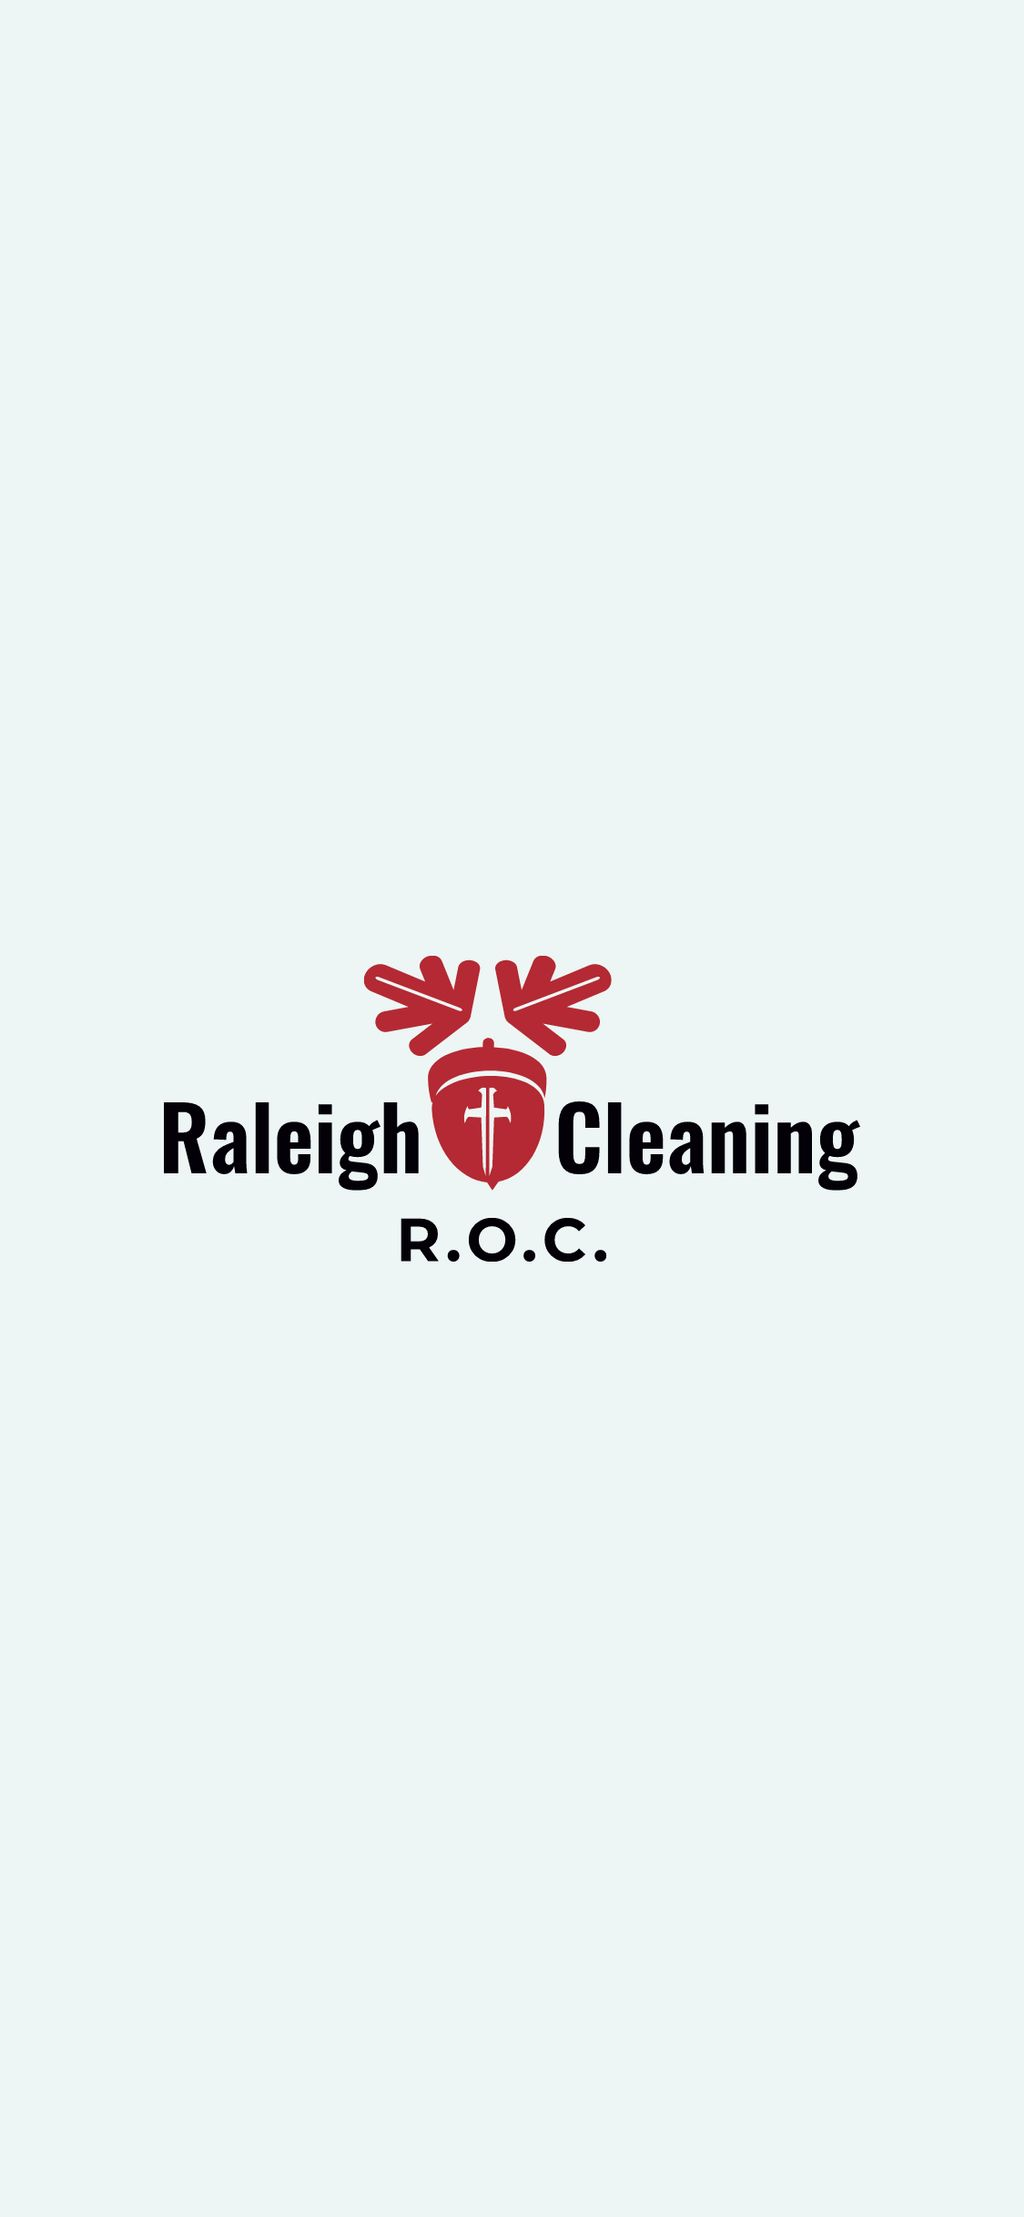 Raleigh Oaks Cleaning